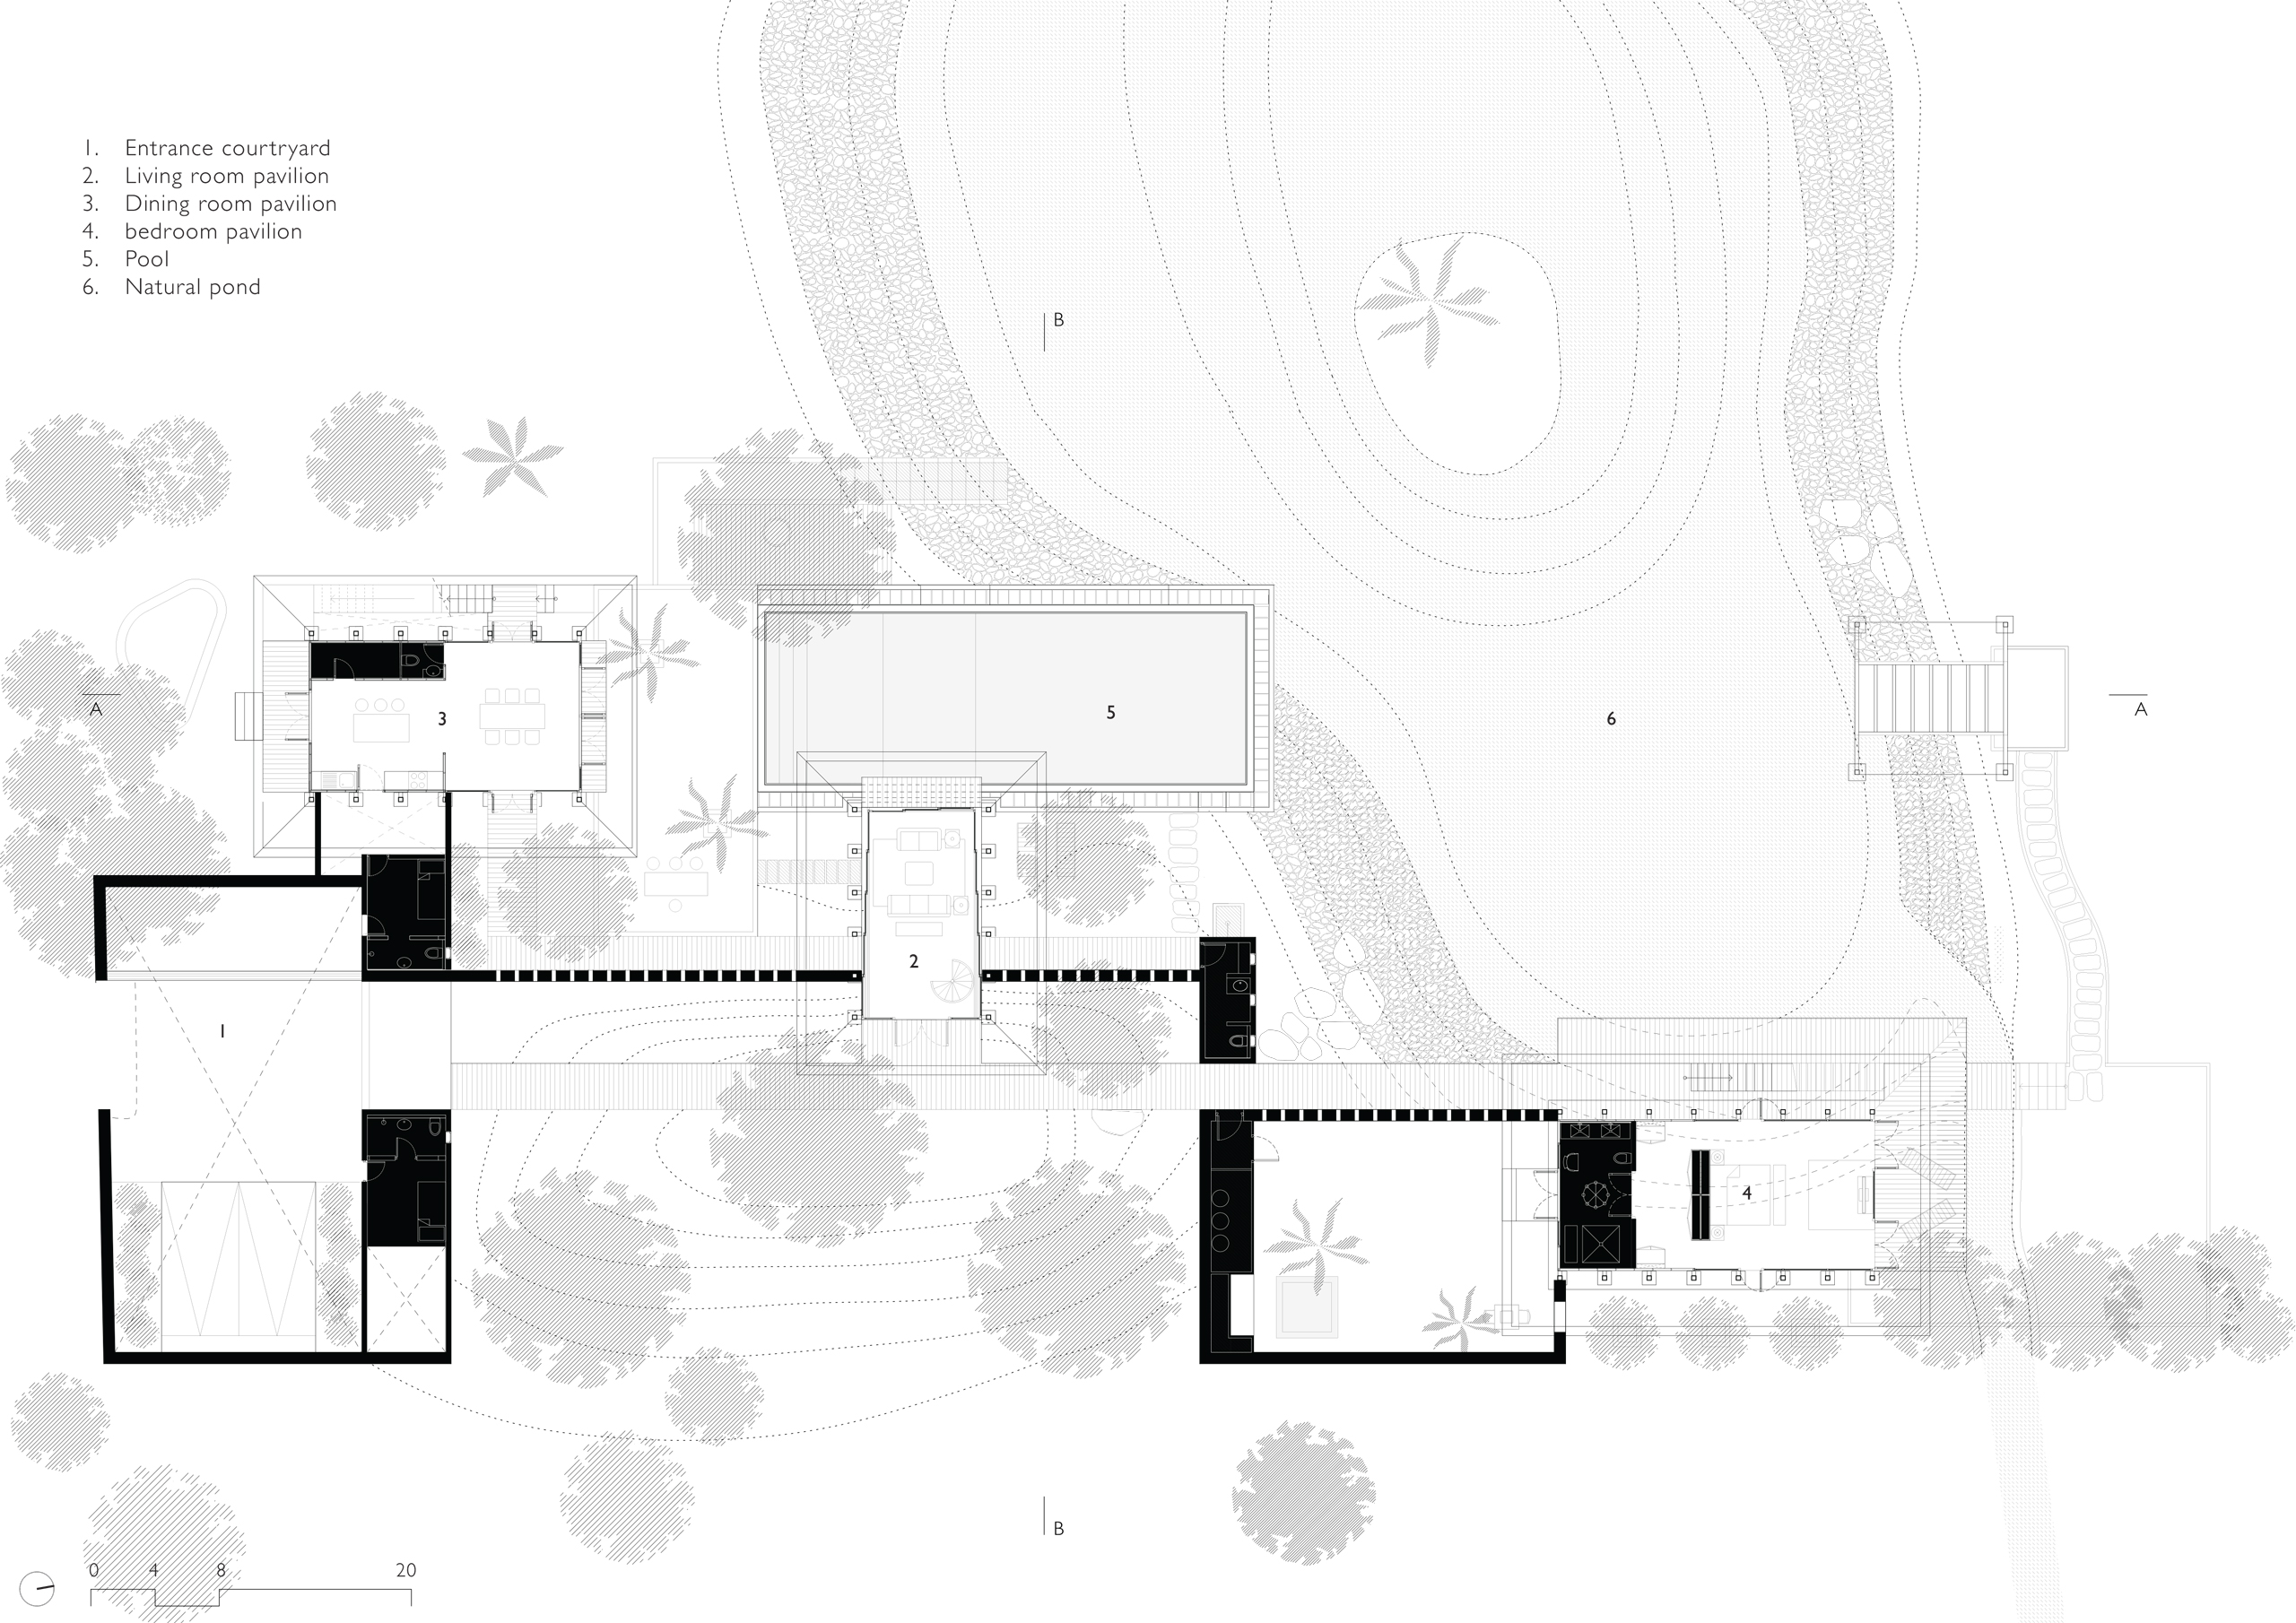 Floor Plan of Waikiki Wetland Resort, India